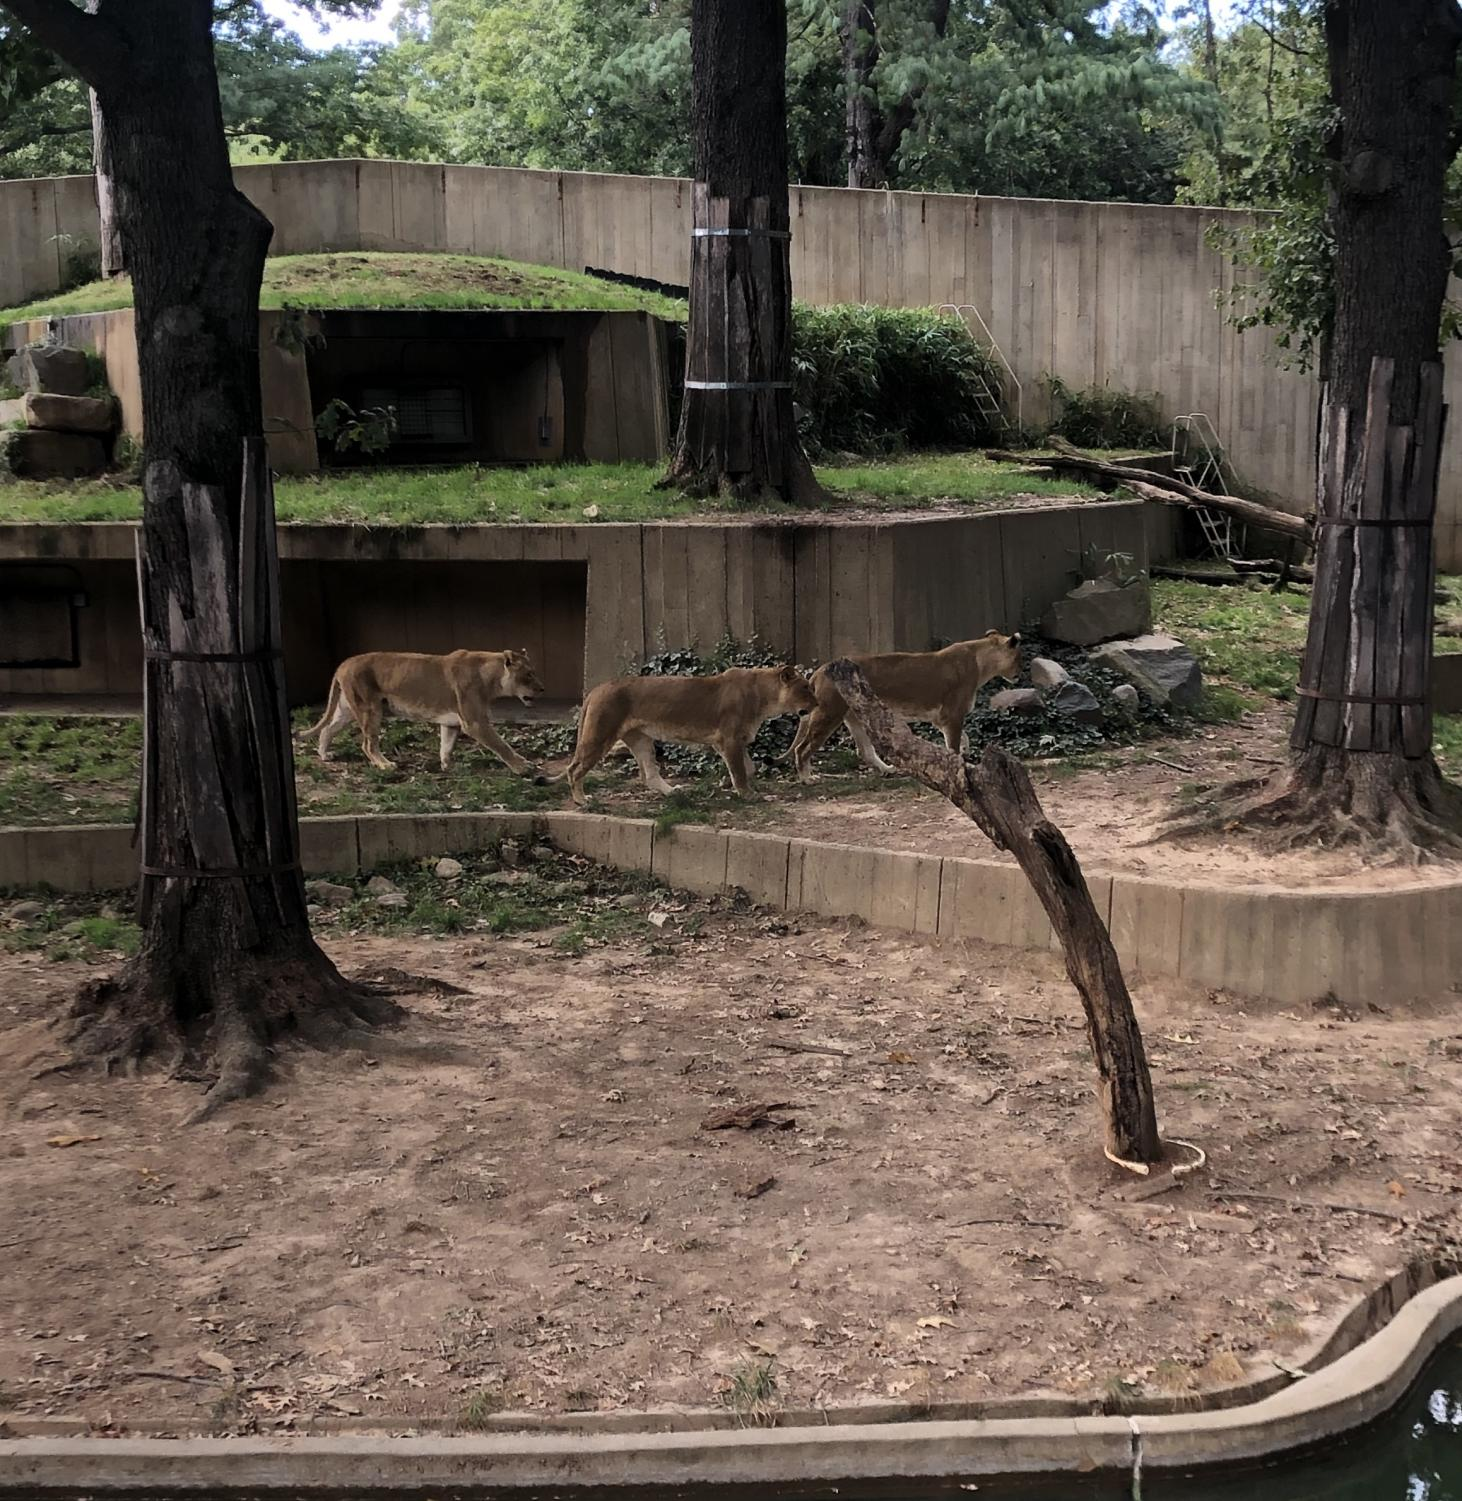 The King of the Jungle, and of the Smithsonian National Zoo, the majestic lion rules everywhere she goes. Despite being so naturally feared, they are still in danger. Lions are preserved in the zoo and actually live longer than when they are left in the wild.